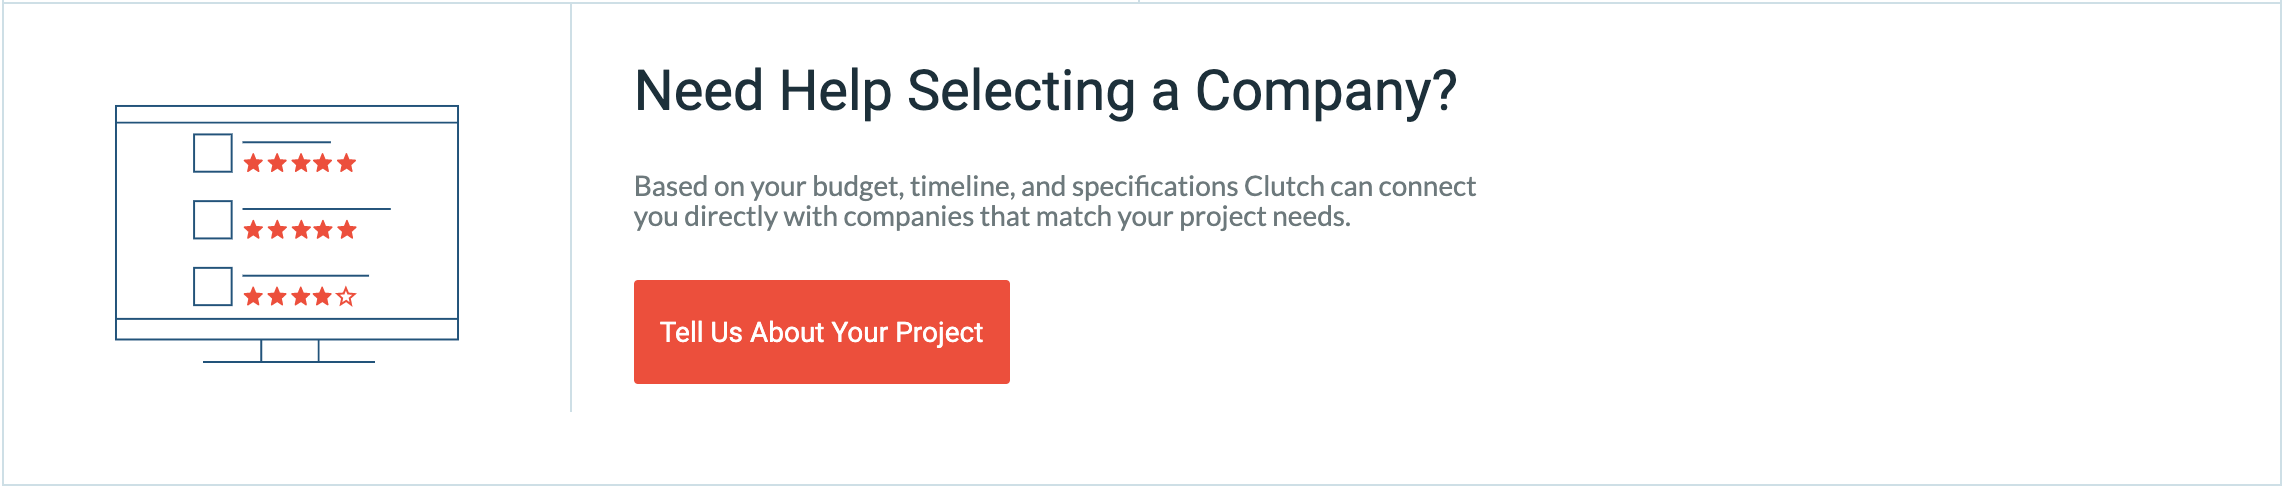 Clutch is able to provide you with a free consultation to help pick the right company. There's a CTA section that once clicked will enable you to schedule a consultation.